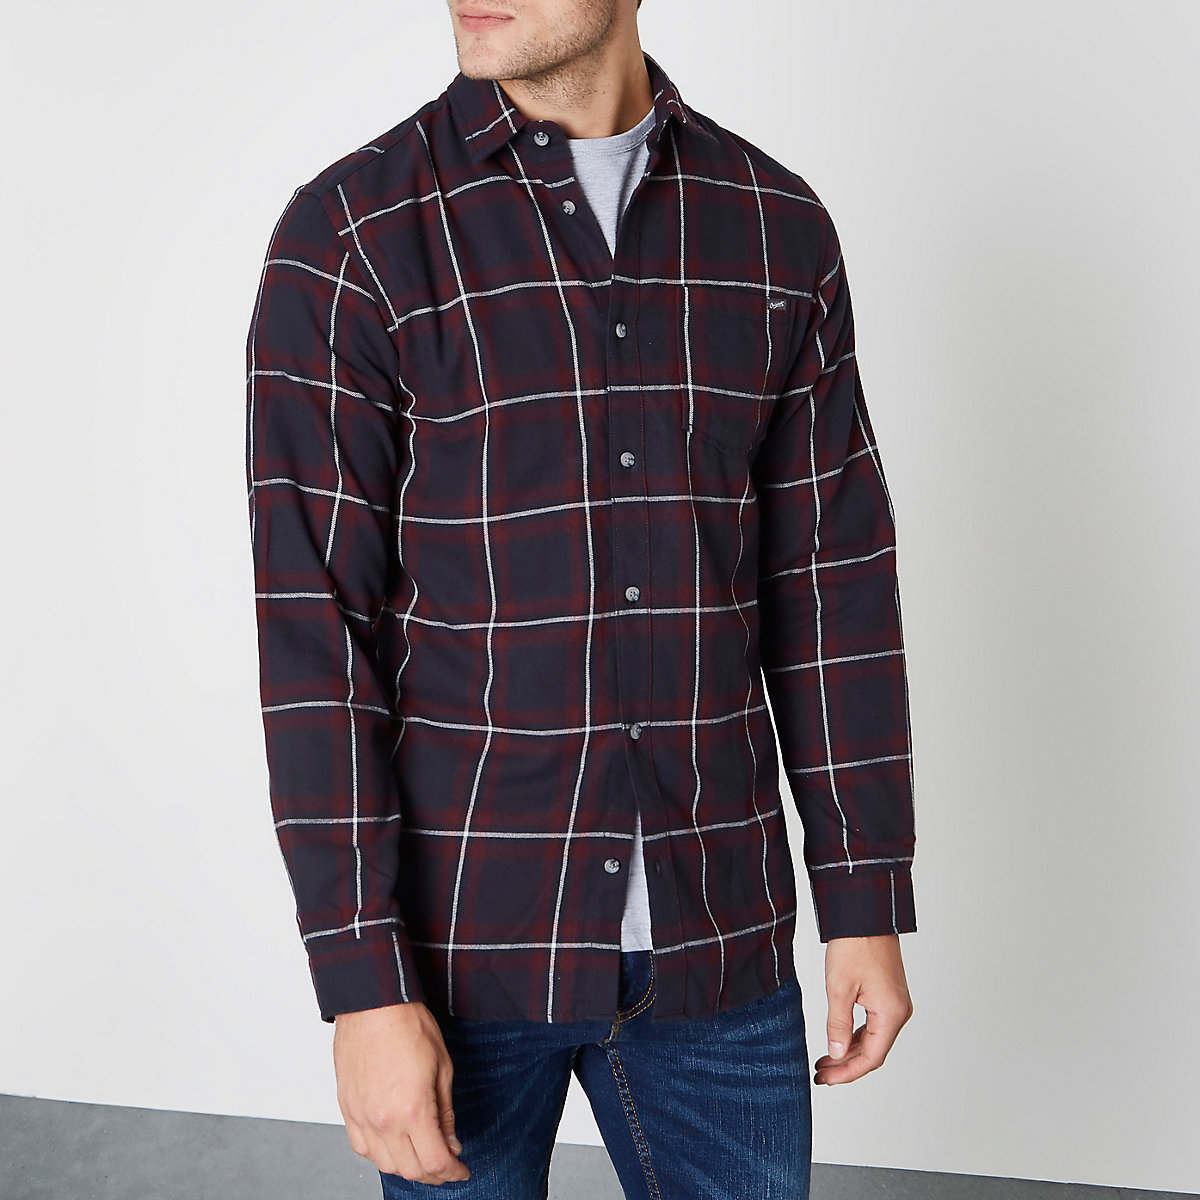 Jack & Jones dark red check long sleeve shirt